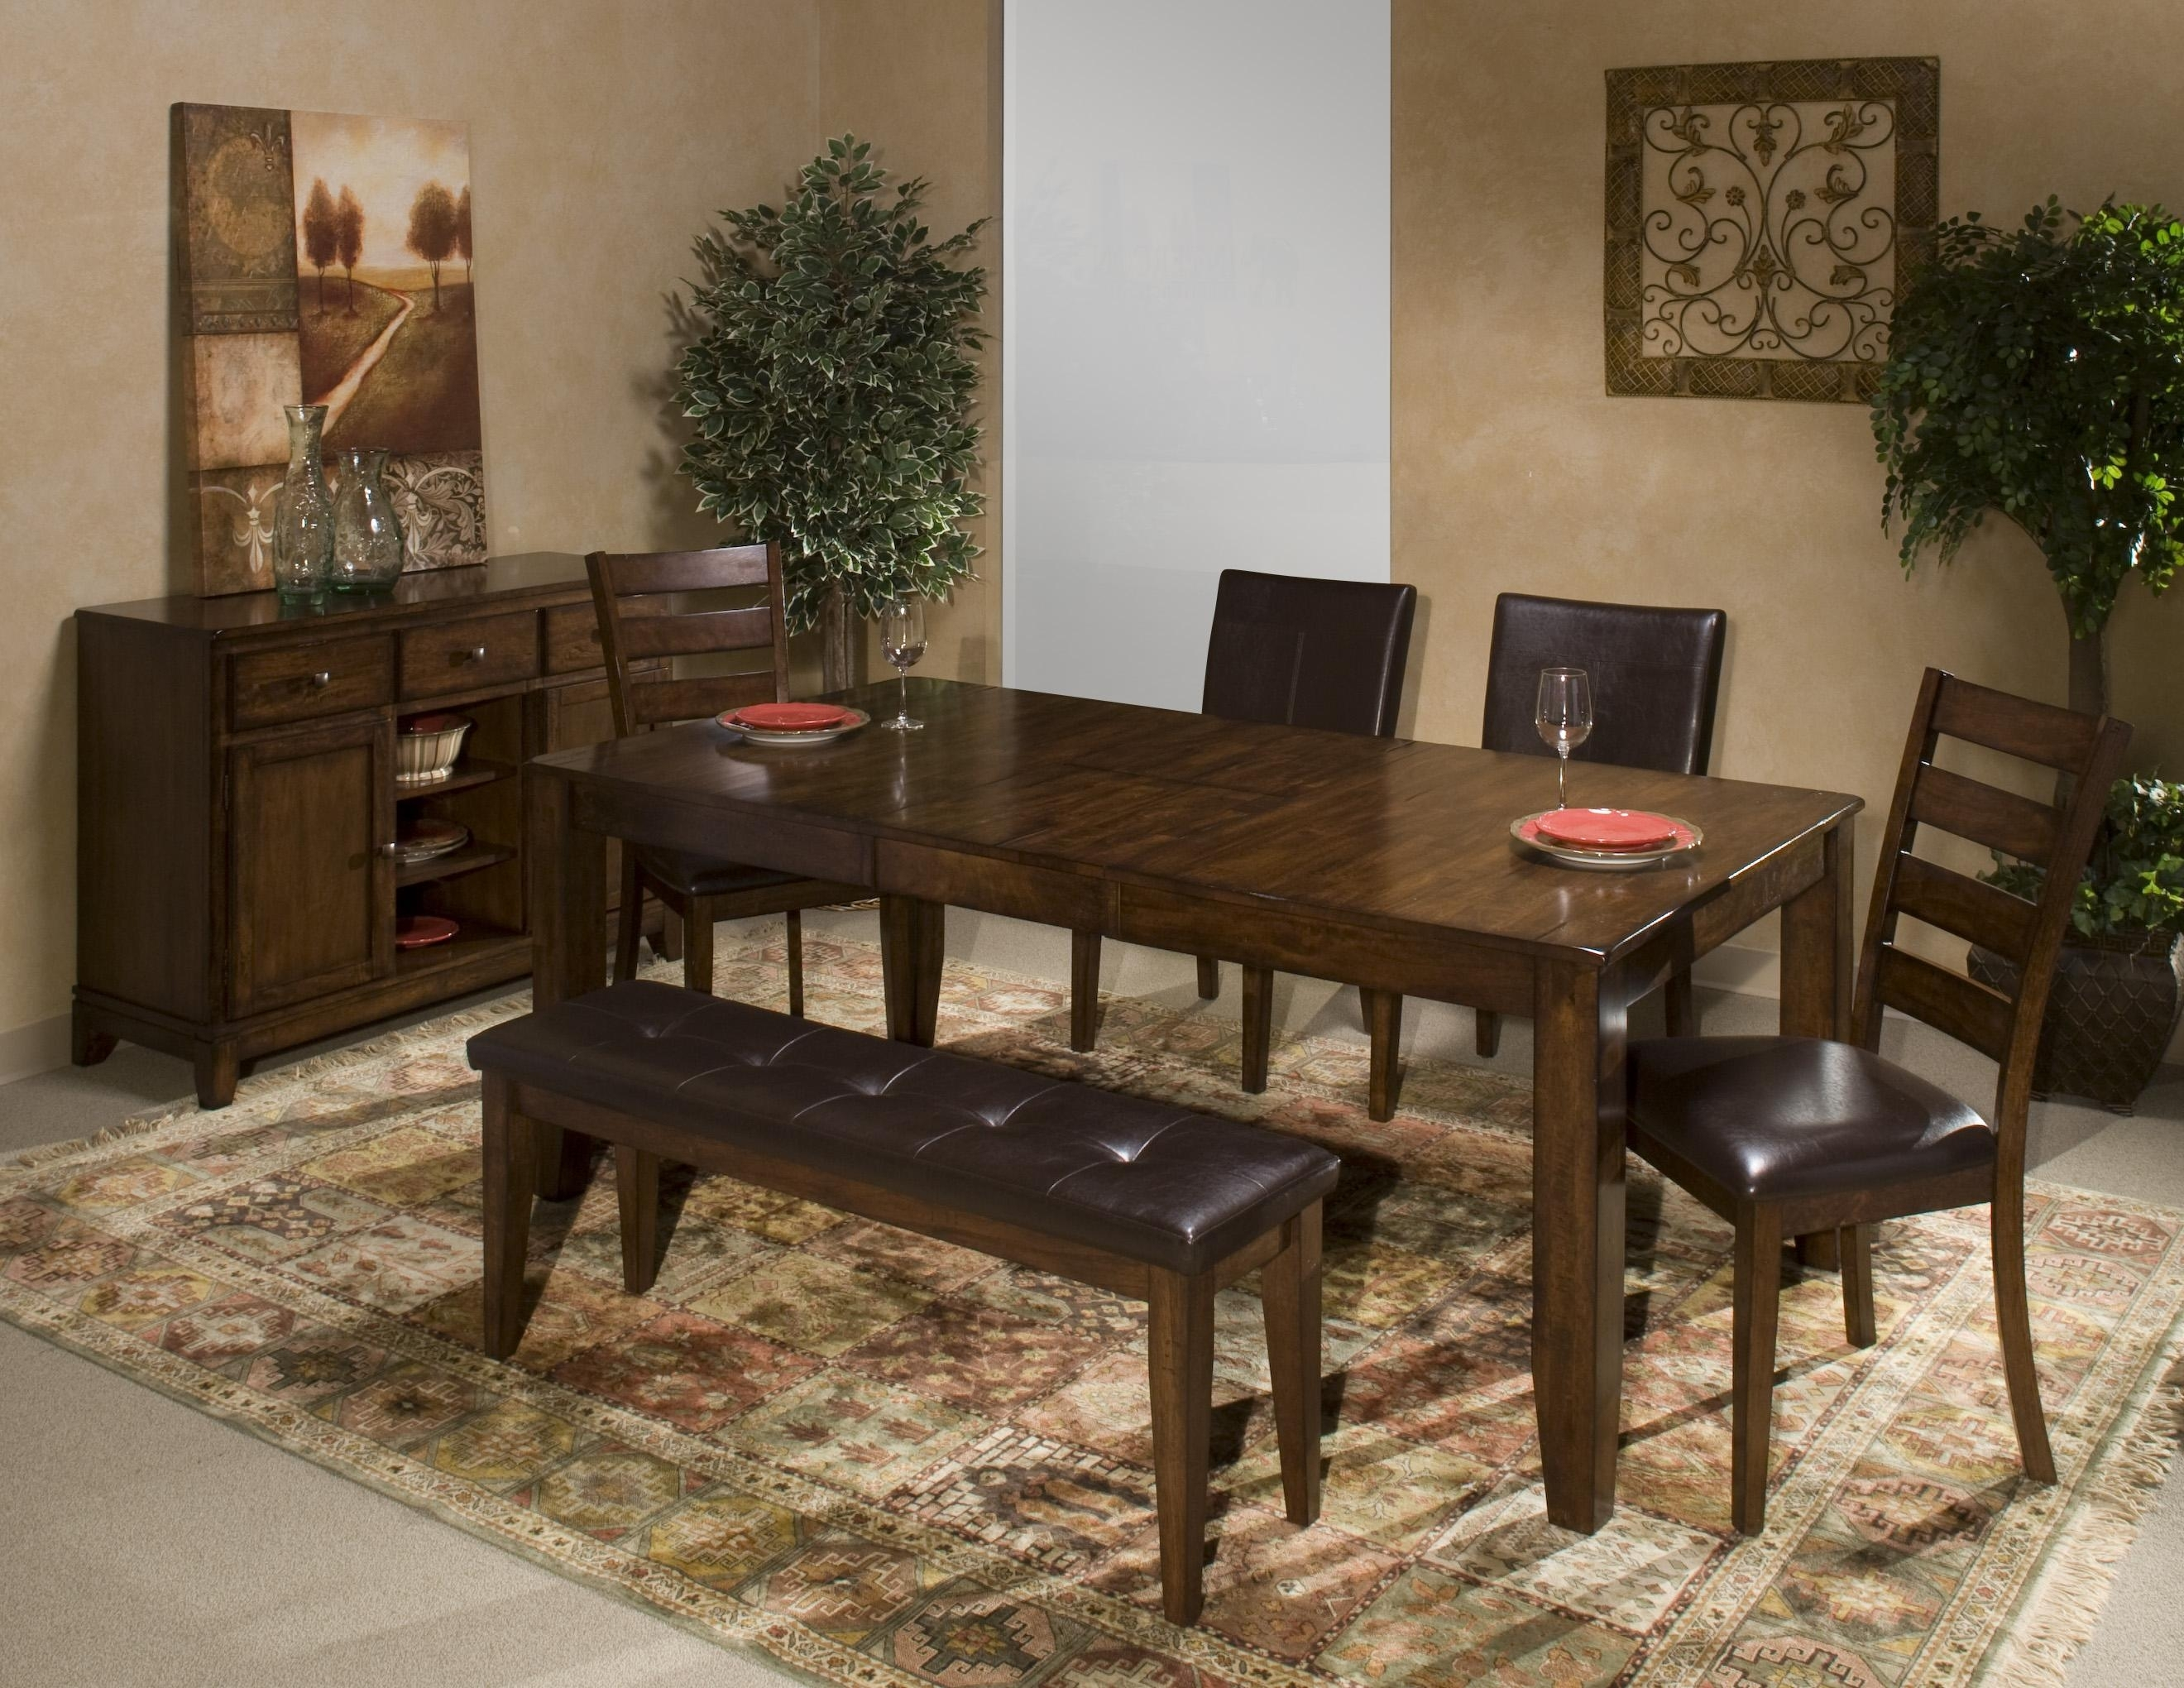 Intercon Kona Counter Height Table With Leaf | Wayside Furniture Intended For Most Up To Date Market 6 Piece Dining Sets With Host And Side Chairs (Image 12 of 20)